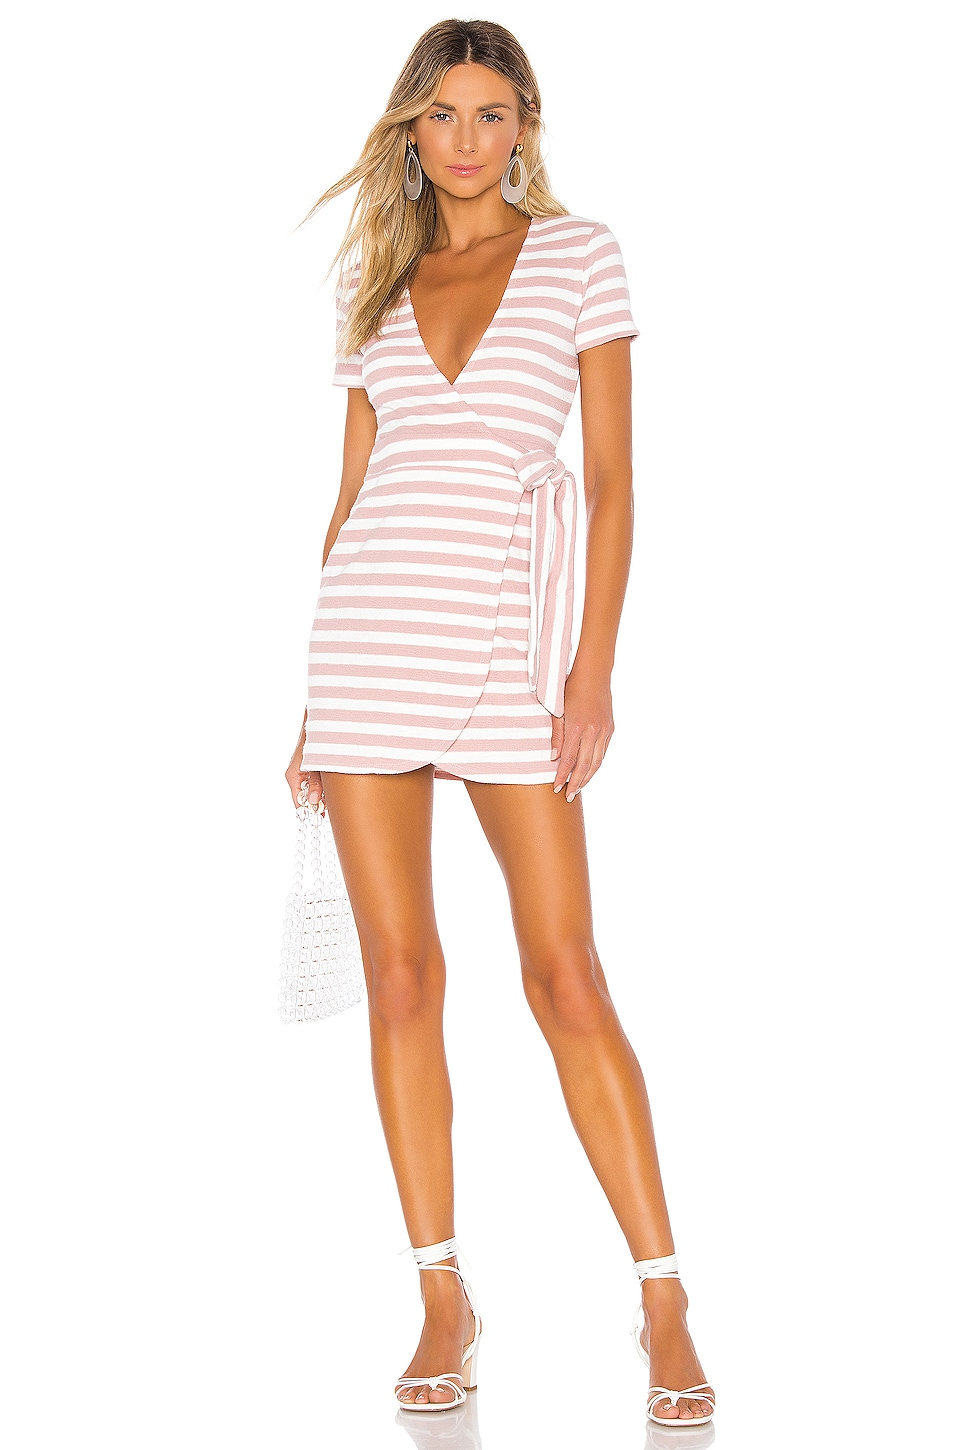 Privacy Please Sunkist Robe in Pink Stripe